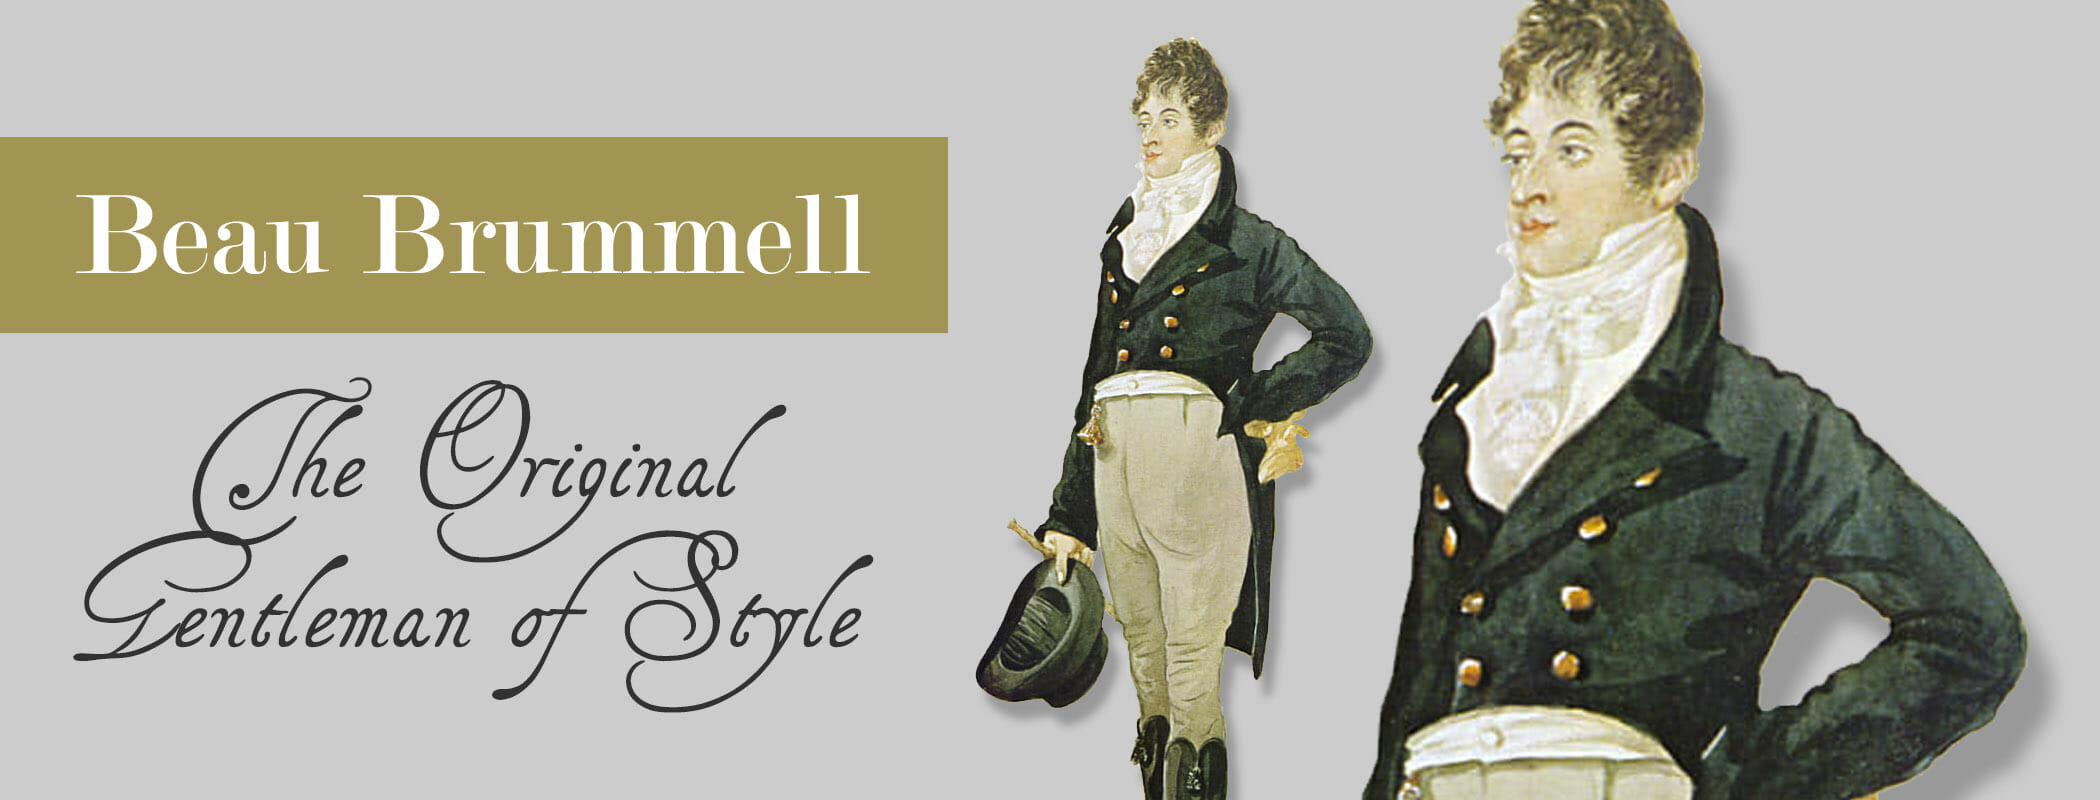 In the early 19th century, British  dandy   Beau Brummell  redefined, adapted, and popularized the style of the British court, leading  European  men to wearing well-cut, tailored clothes, adorned with carefully knotted neckties. The simplicity of the new clothes and their somber colors contrasted strongly with the extravagant,  foppish  styles just before. Brummell's influence introduced the modern era of men's clothing which now includes the modern suit and necktie. Moreover, he introduced a whole new era of grooming and style, including regular (daily) bathing as part of a man's toilette. However, paintings of French men from 1794 onwards reveal that Brummel might only have adopted and popularized post-revolutionary French suits, which included tail coat, double-breasted waistcoat and full-length trousers with either  Hessian boots  or regular-size shoes. There is no 18th-century painting of Brummel to establish his innovation. The modern suit design seems to be inspired by the utilitarian dressing of hunters and military officers. Paintings of the decade 1760 reveal how the modern coat design with lapels emerged. It can be seen in the hunting scene with Count Carl Emil Ulrich von Donop as subject by an unknown artist and Frederick William Ernest, Count von Schaumburg-Lippe in Hanoverian Field Marshall uniform painted by Joshua Reynolds.    https://www.gentlemansgazette.com/beau-brummell-the-original/